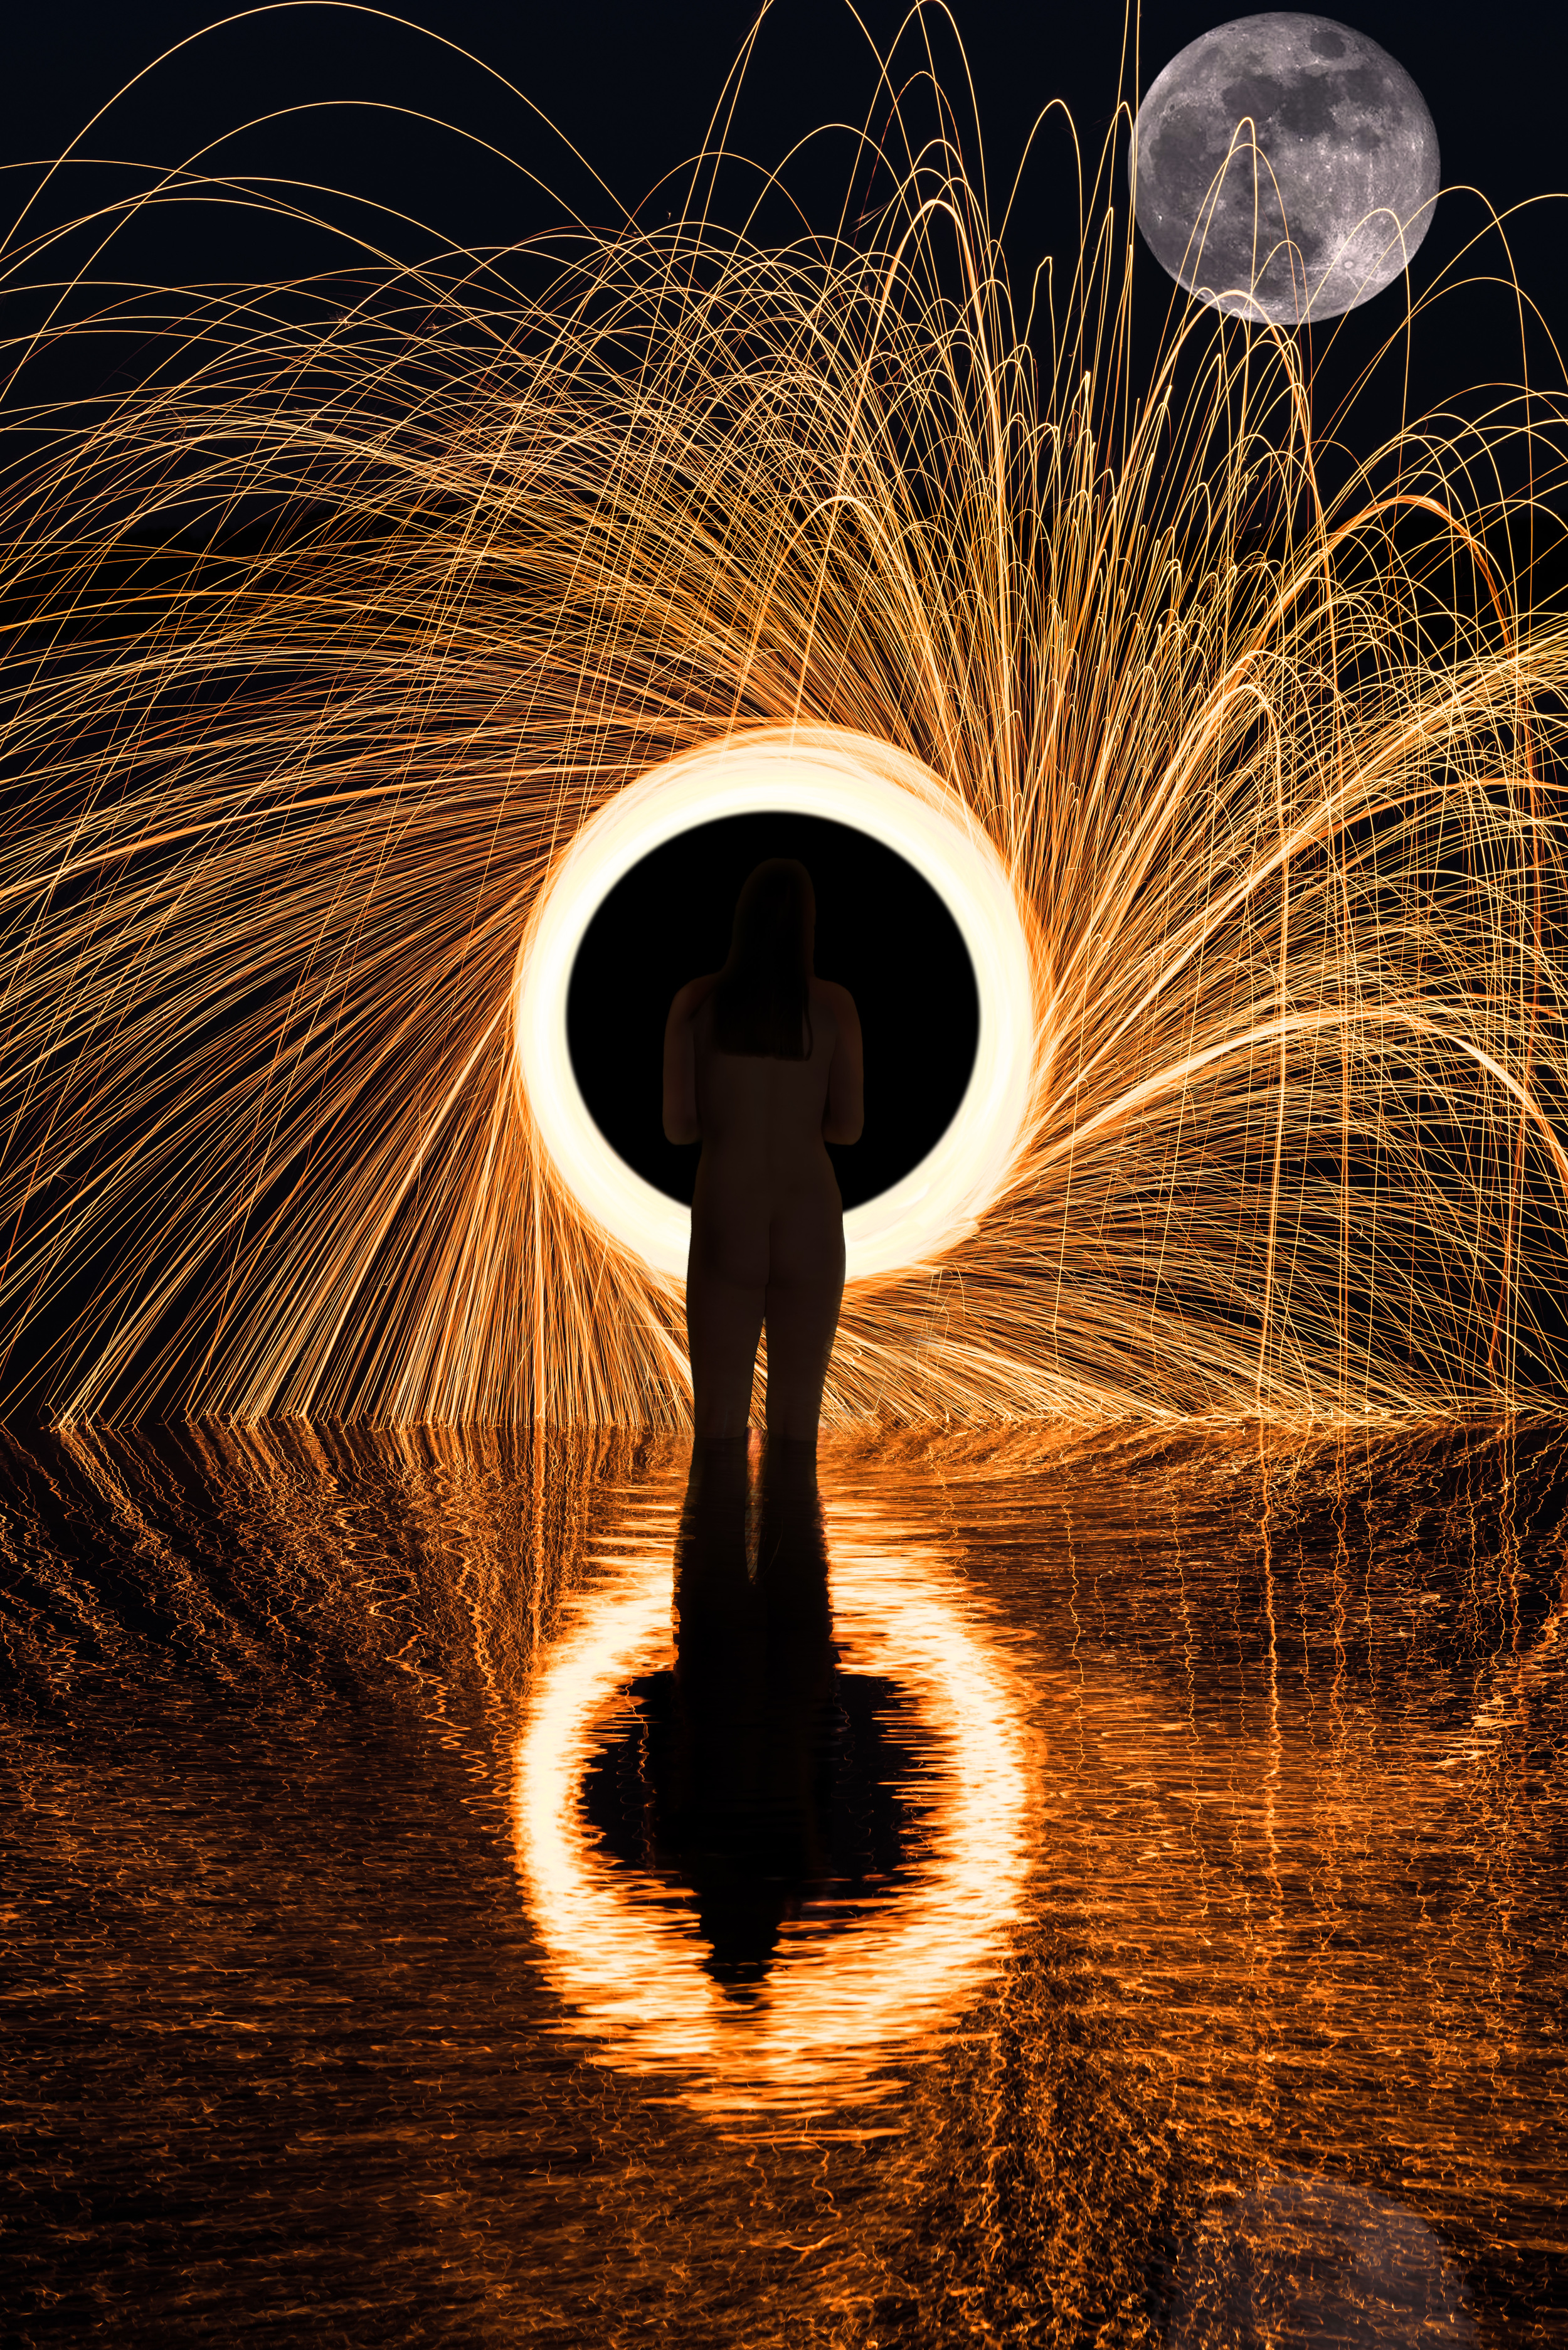 Sparks in the moonlight